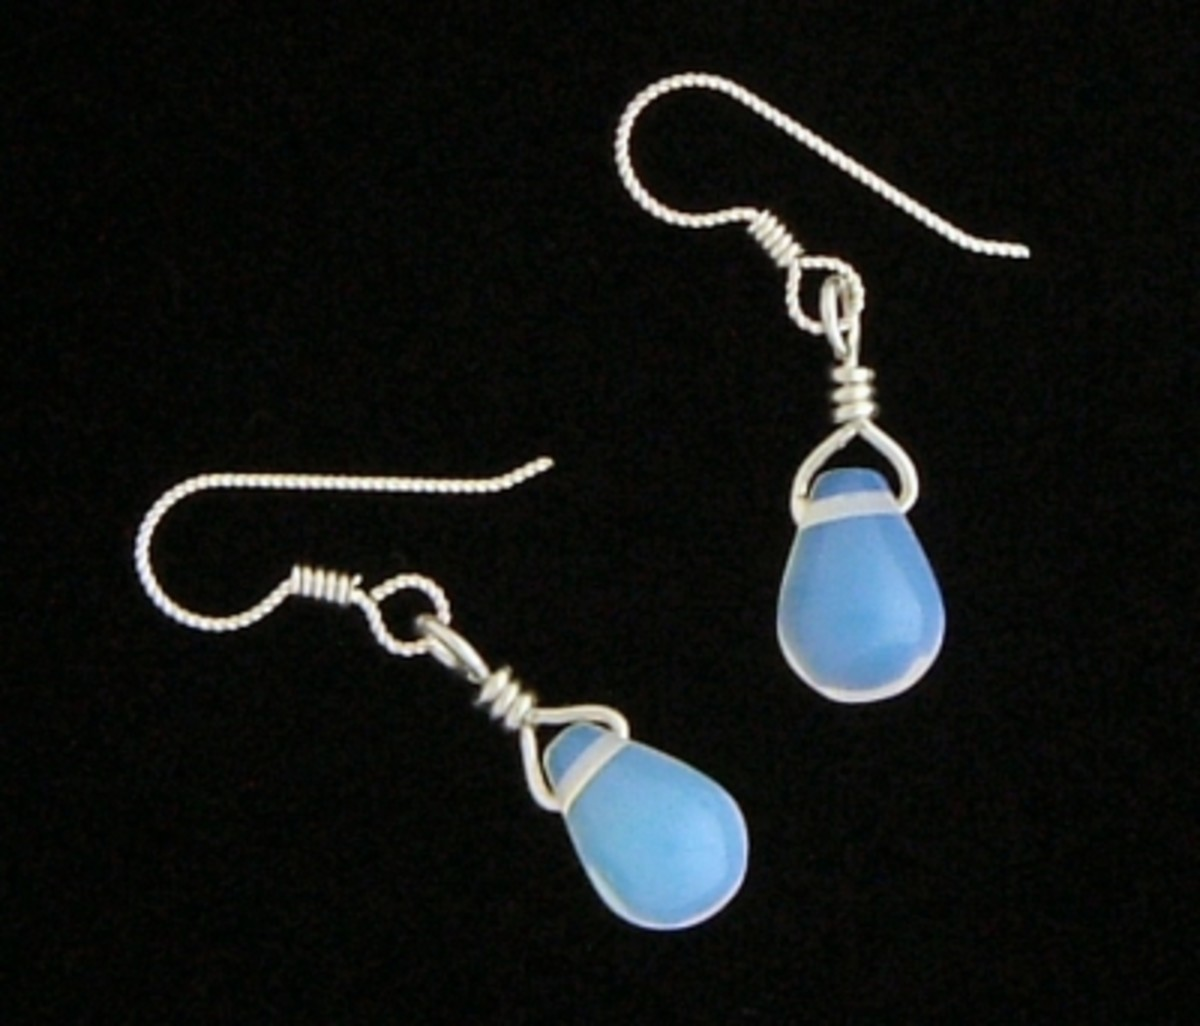 Sea opal glass and sterling silver earrings, with black velvet background.